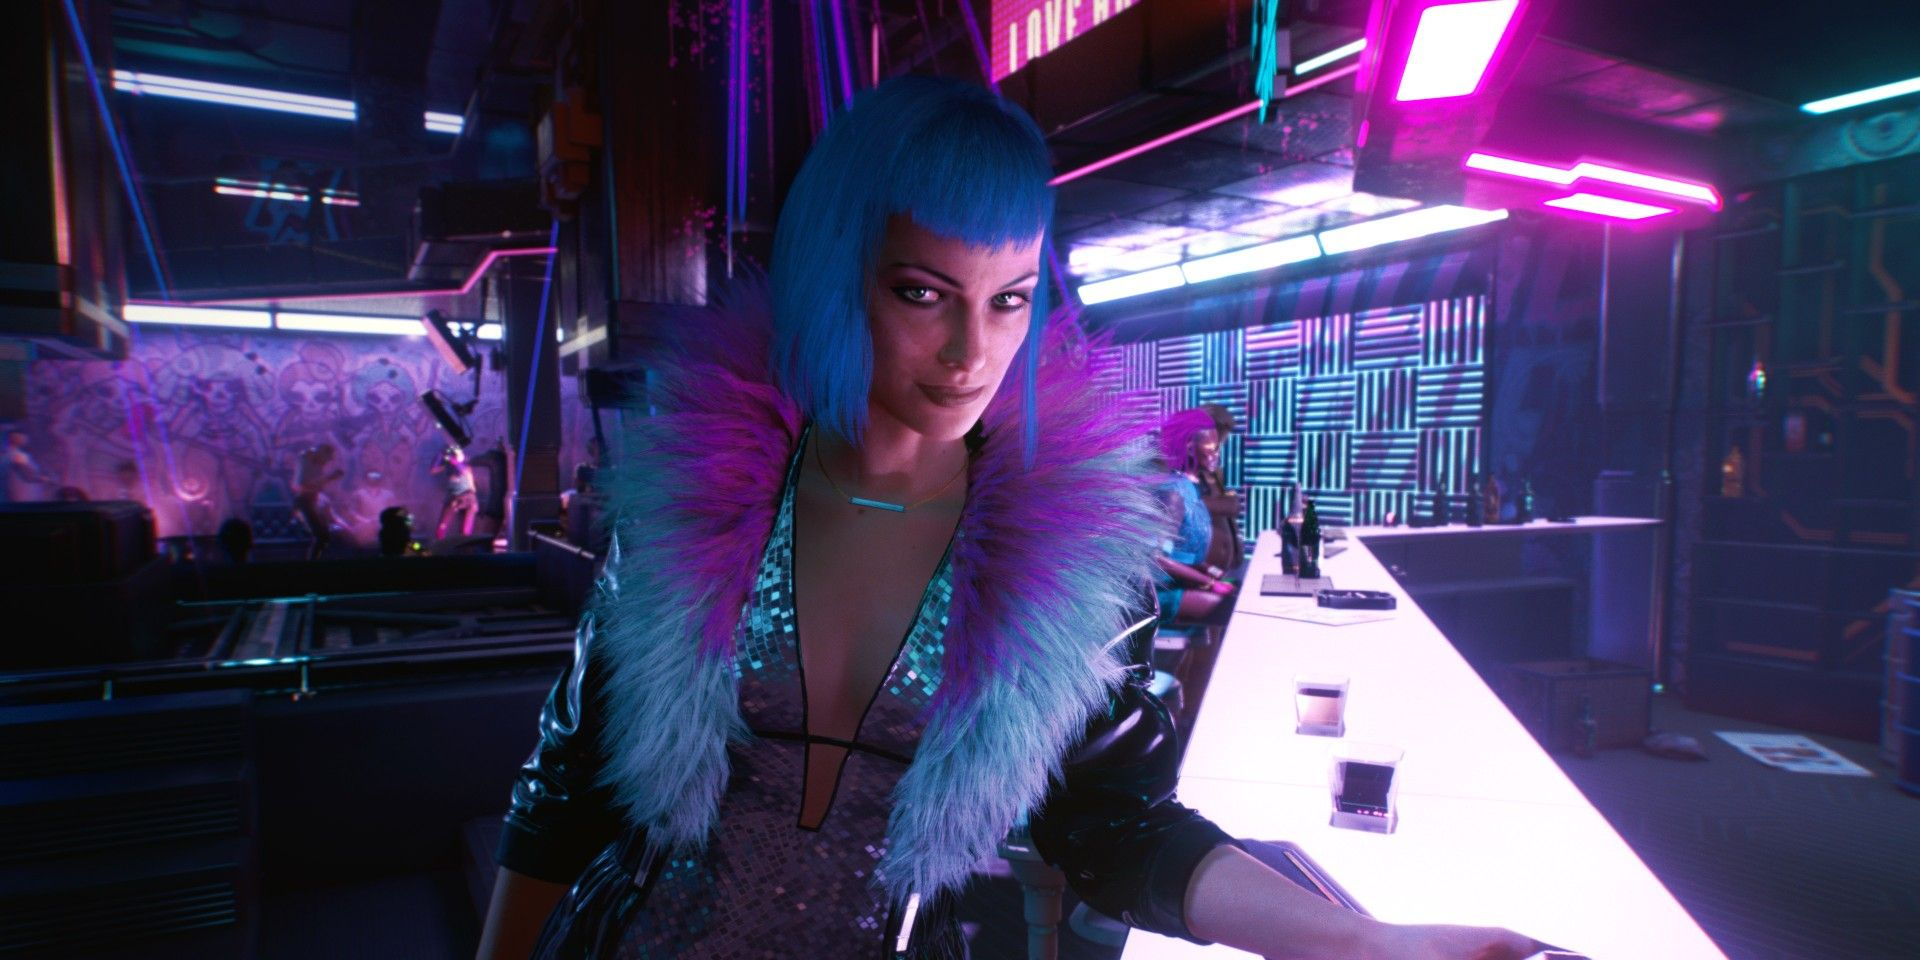 Cyberpunk 2077 Dialogue Scenes Will Be More Interactive and Dangerous